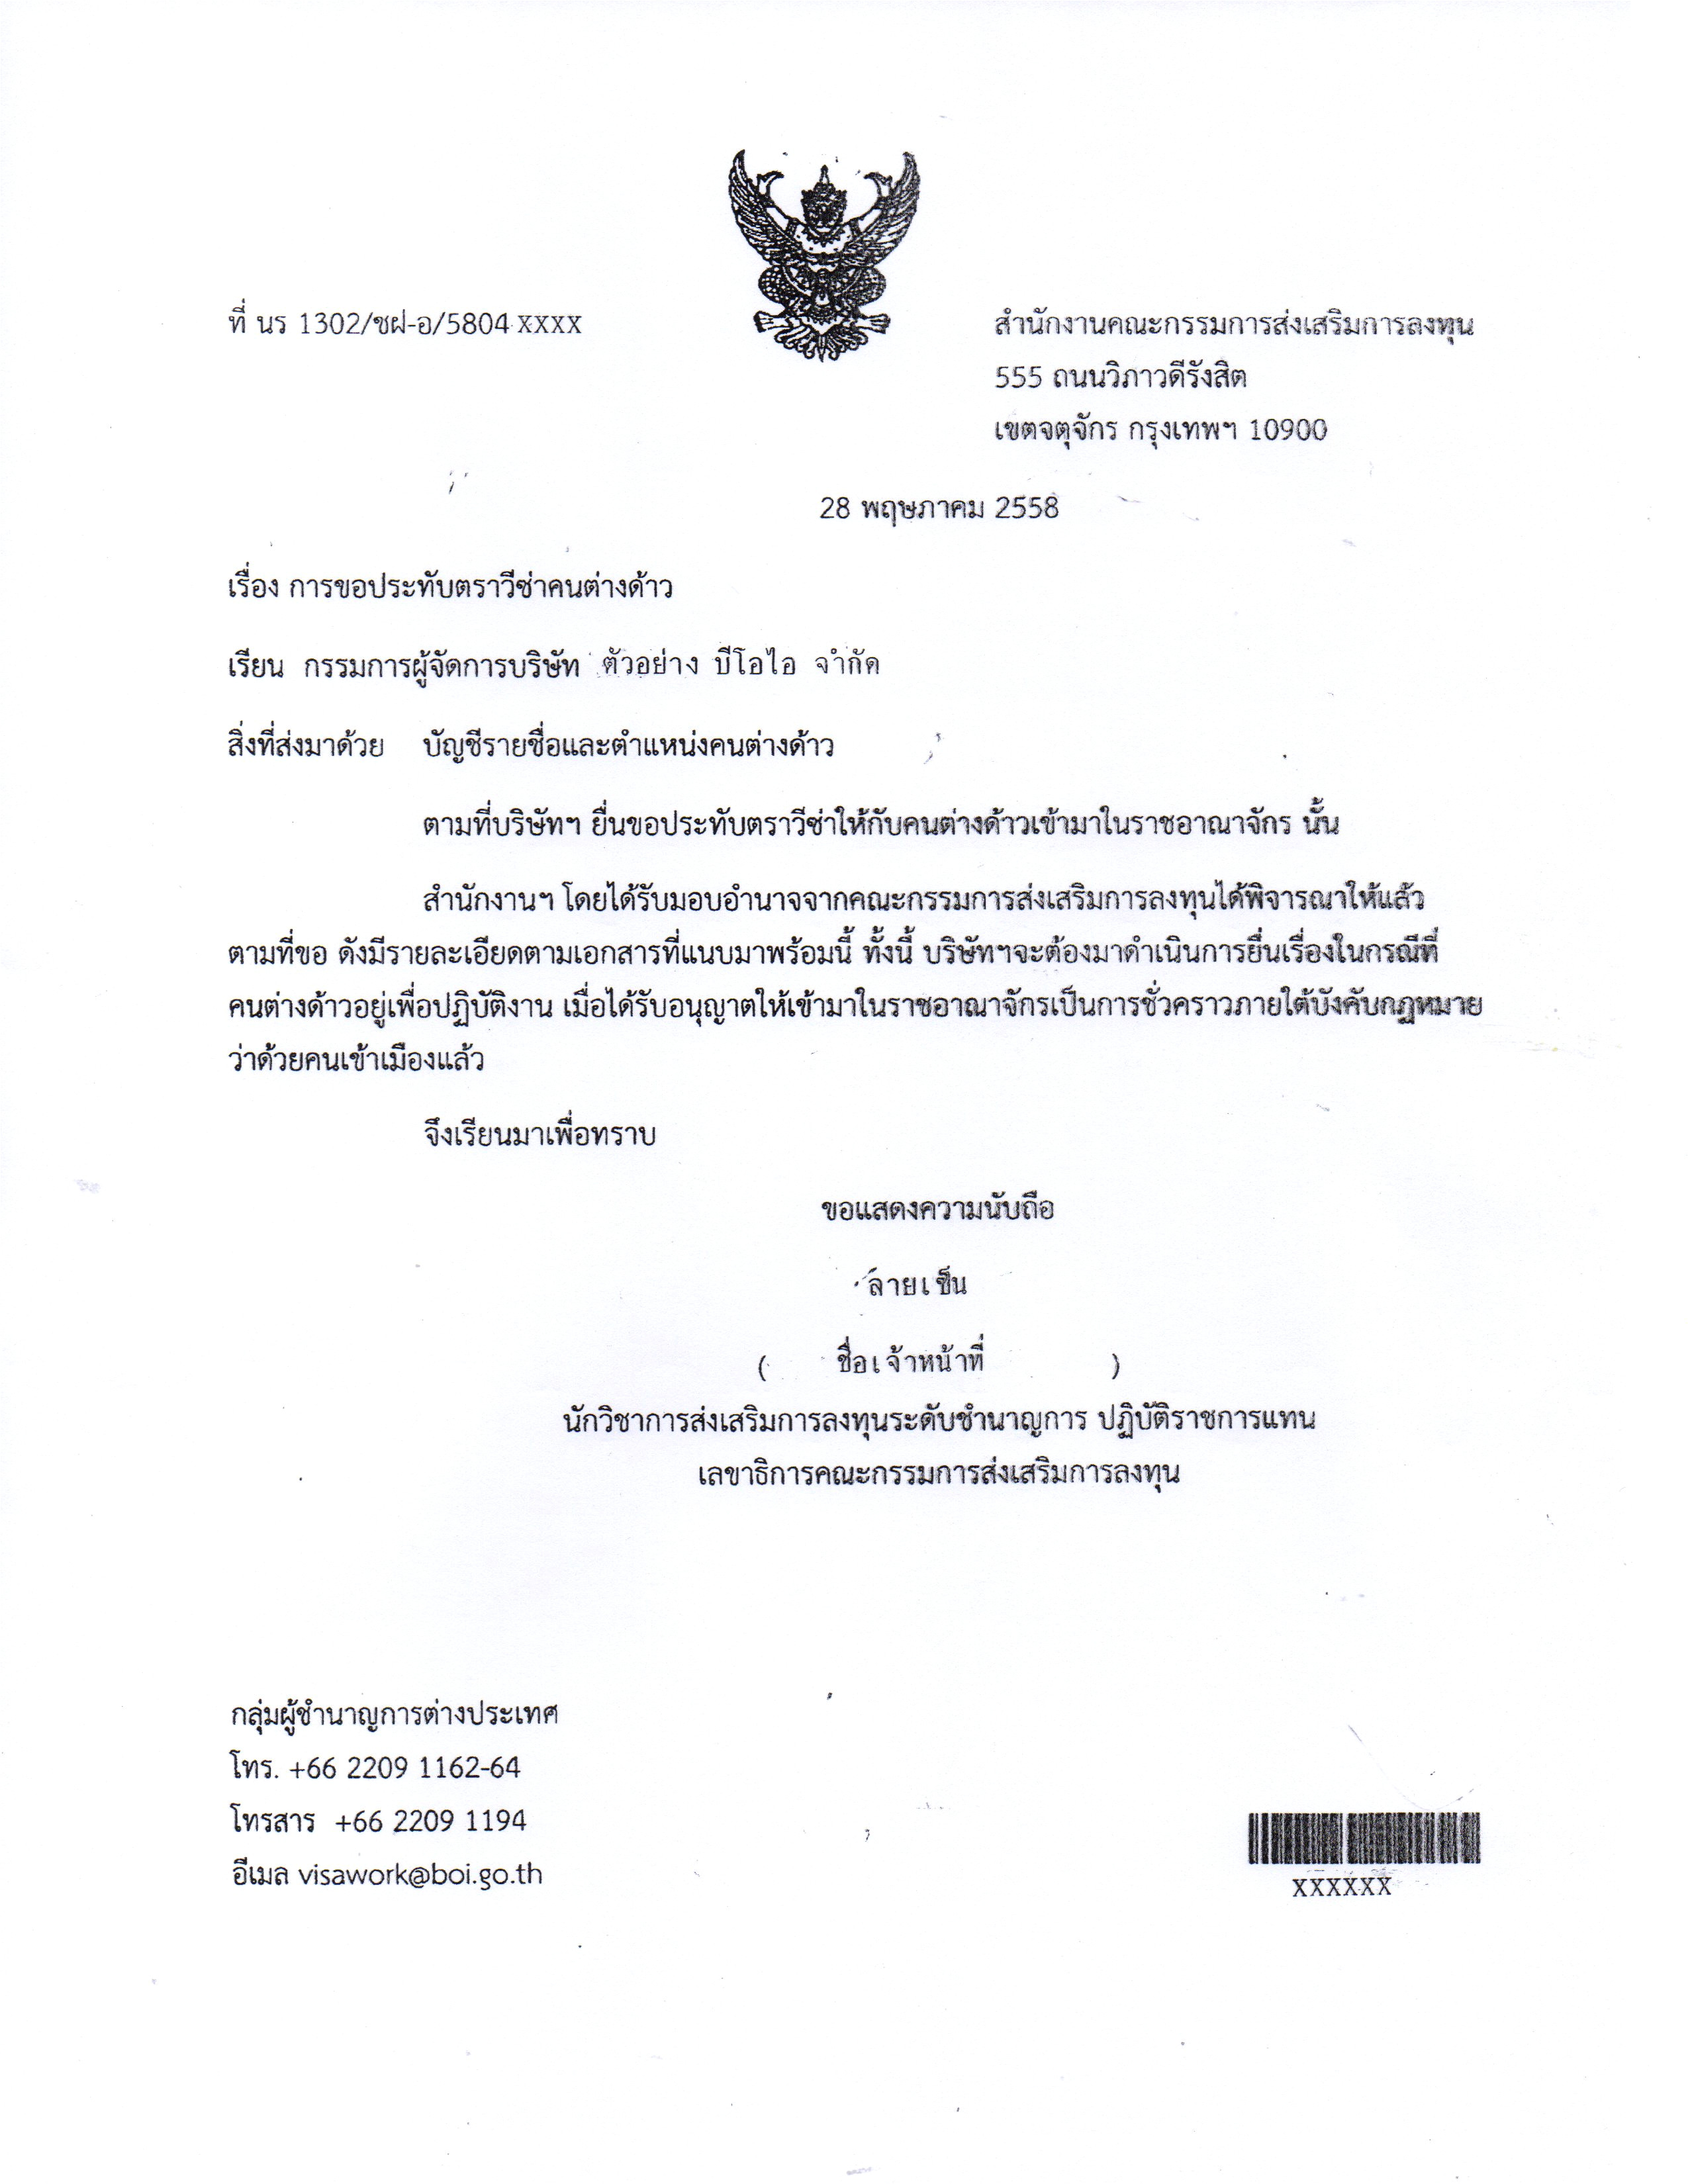 how to get a visa for foreign workers of a thailand boi company